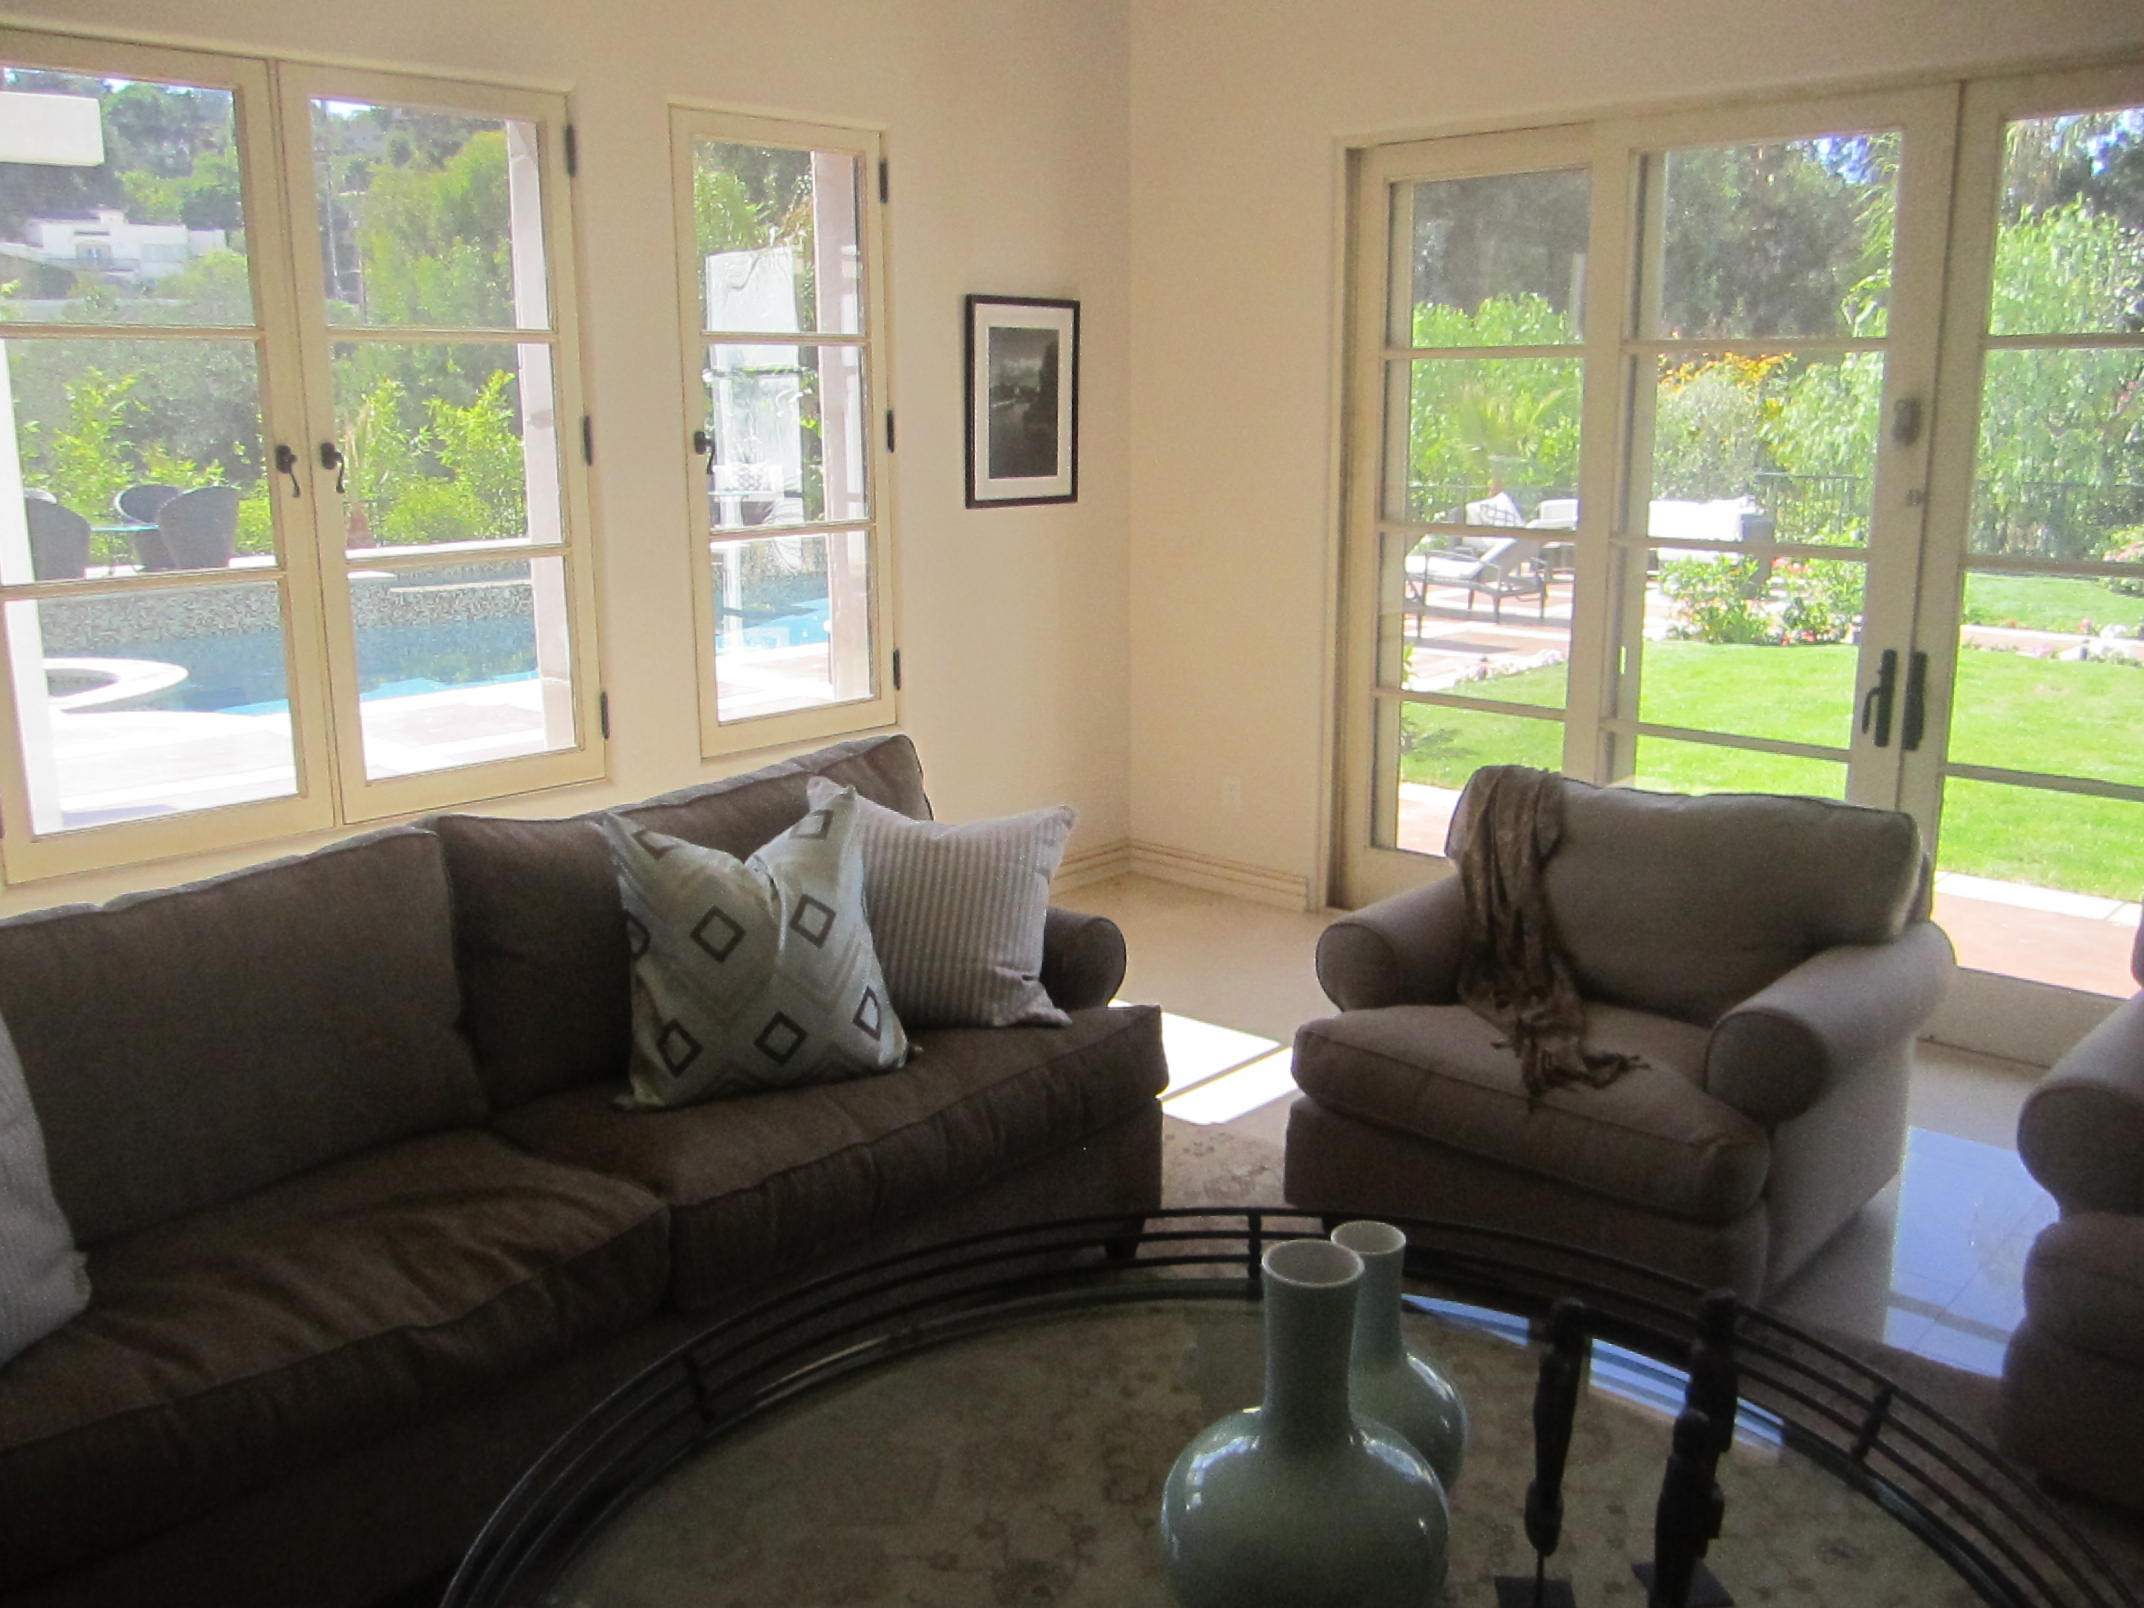 Double French Doors in Living Room Home in Malibu